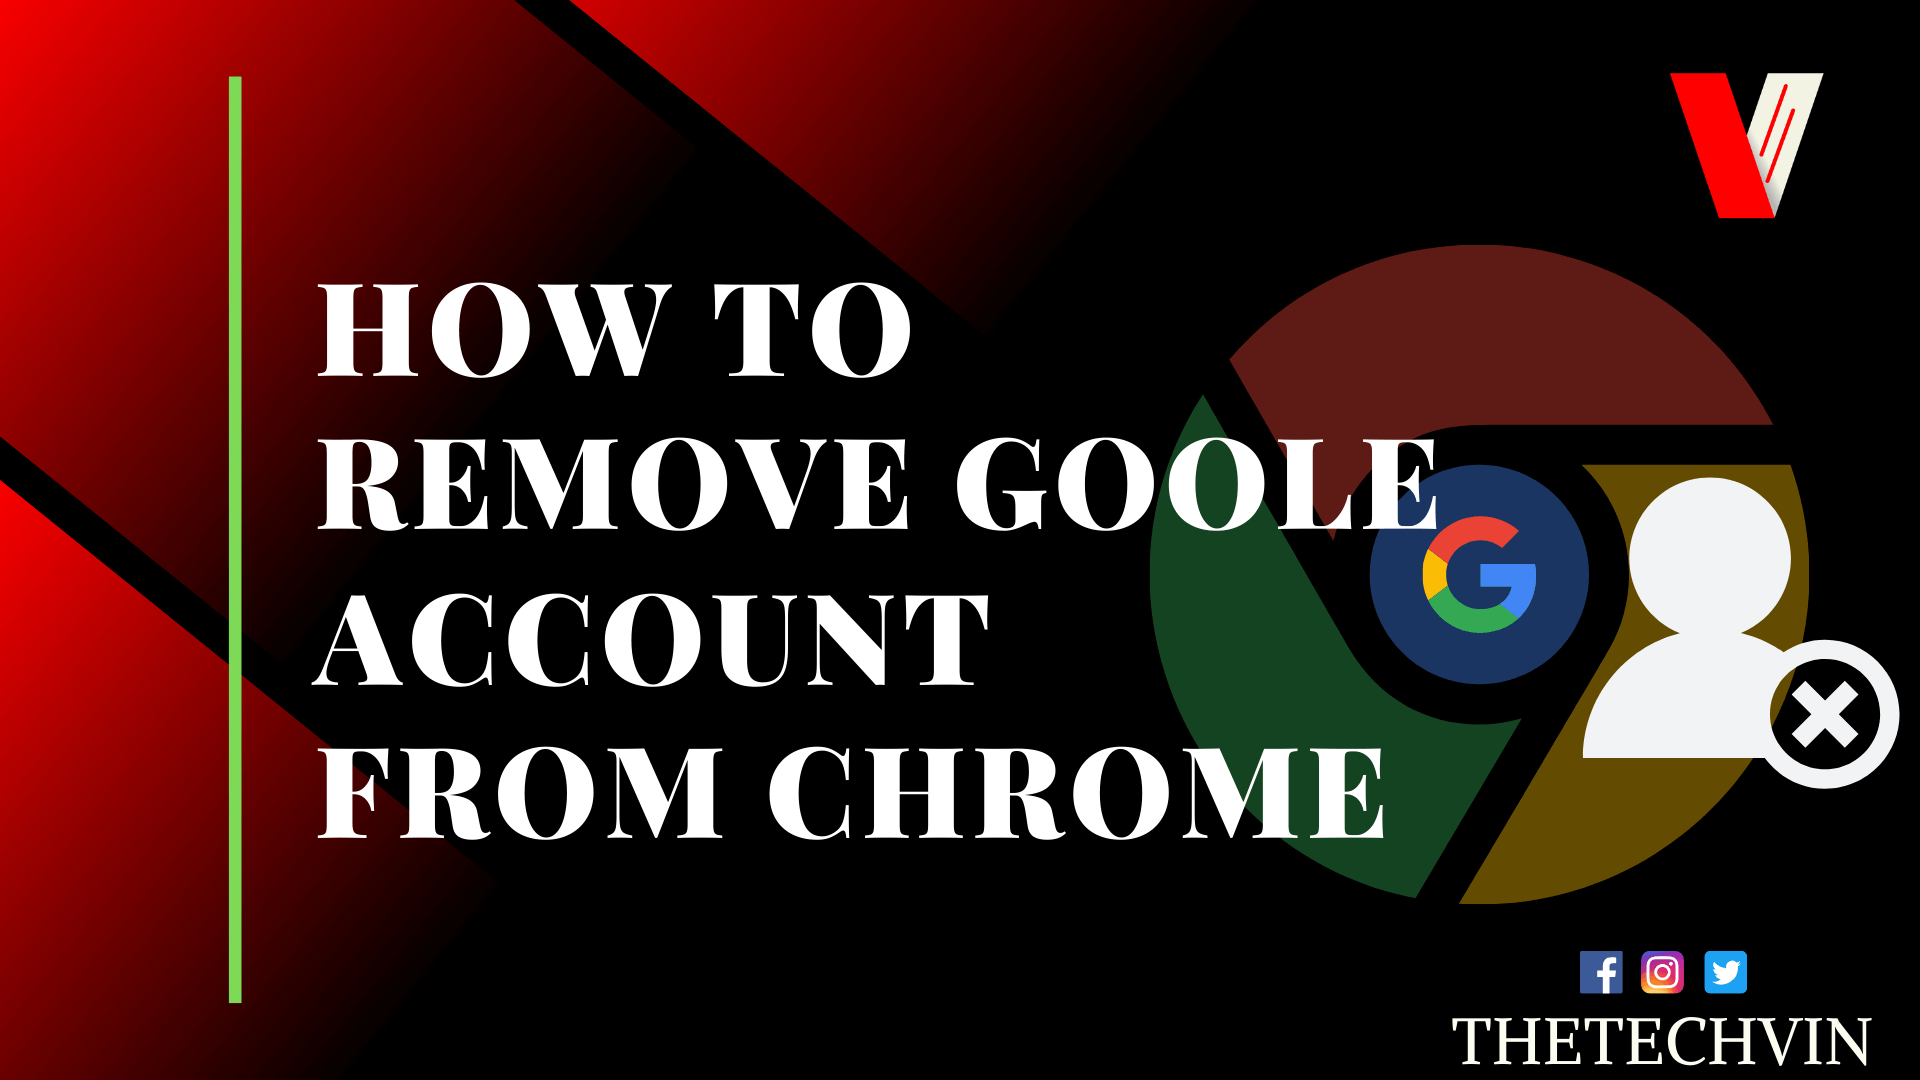 How to Remove Google Account From Chrome